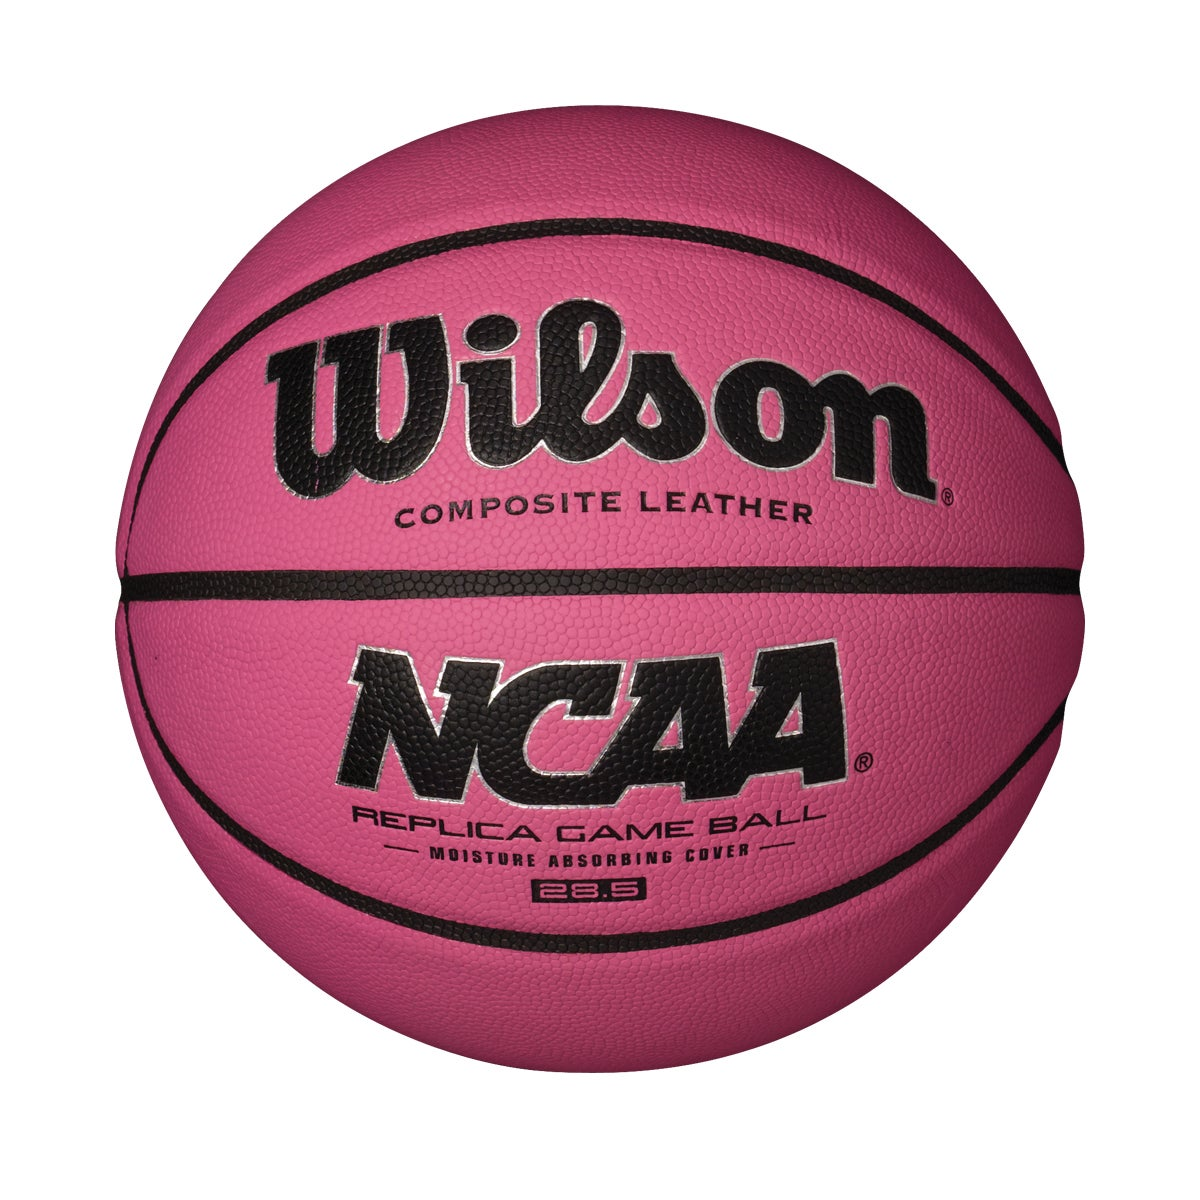 NCAA PINK BASKETBALL - REPLICA SIZE (28.5 IN)